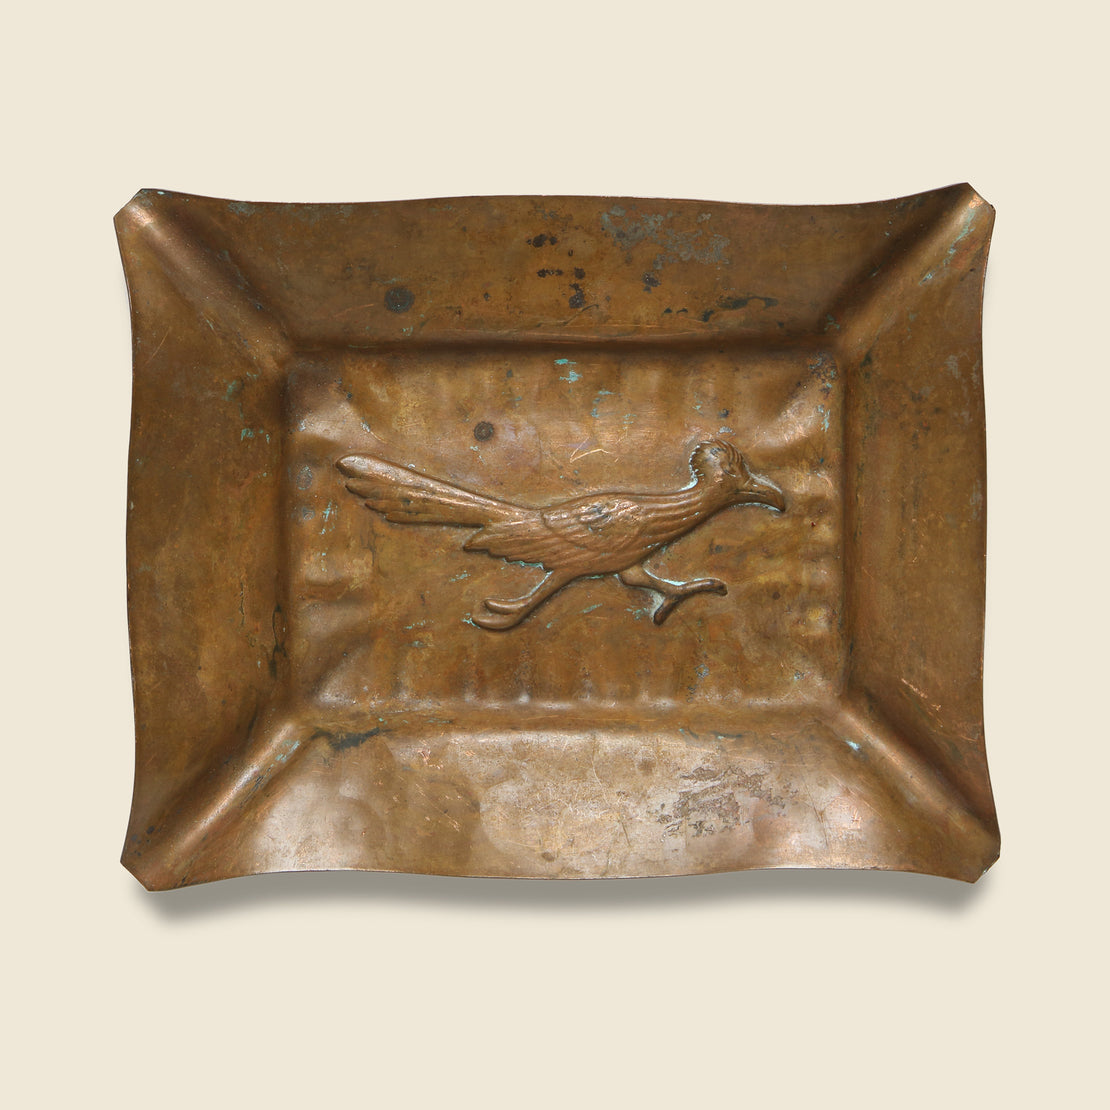 Vintage Copper Tray with Road Runner Relief Design